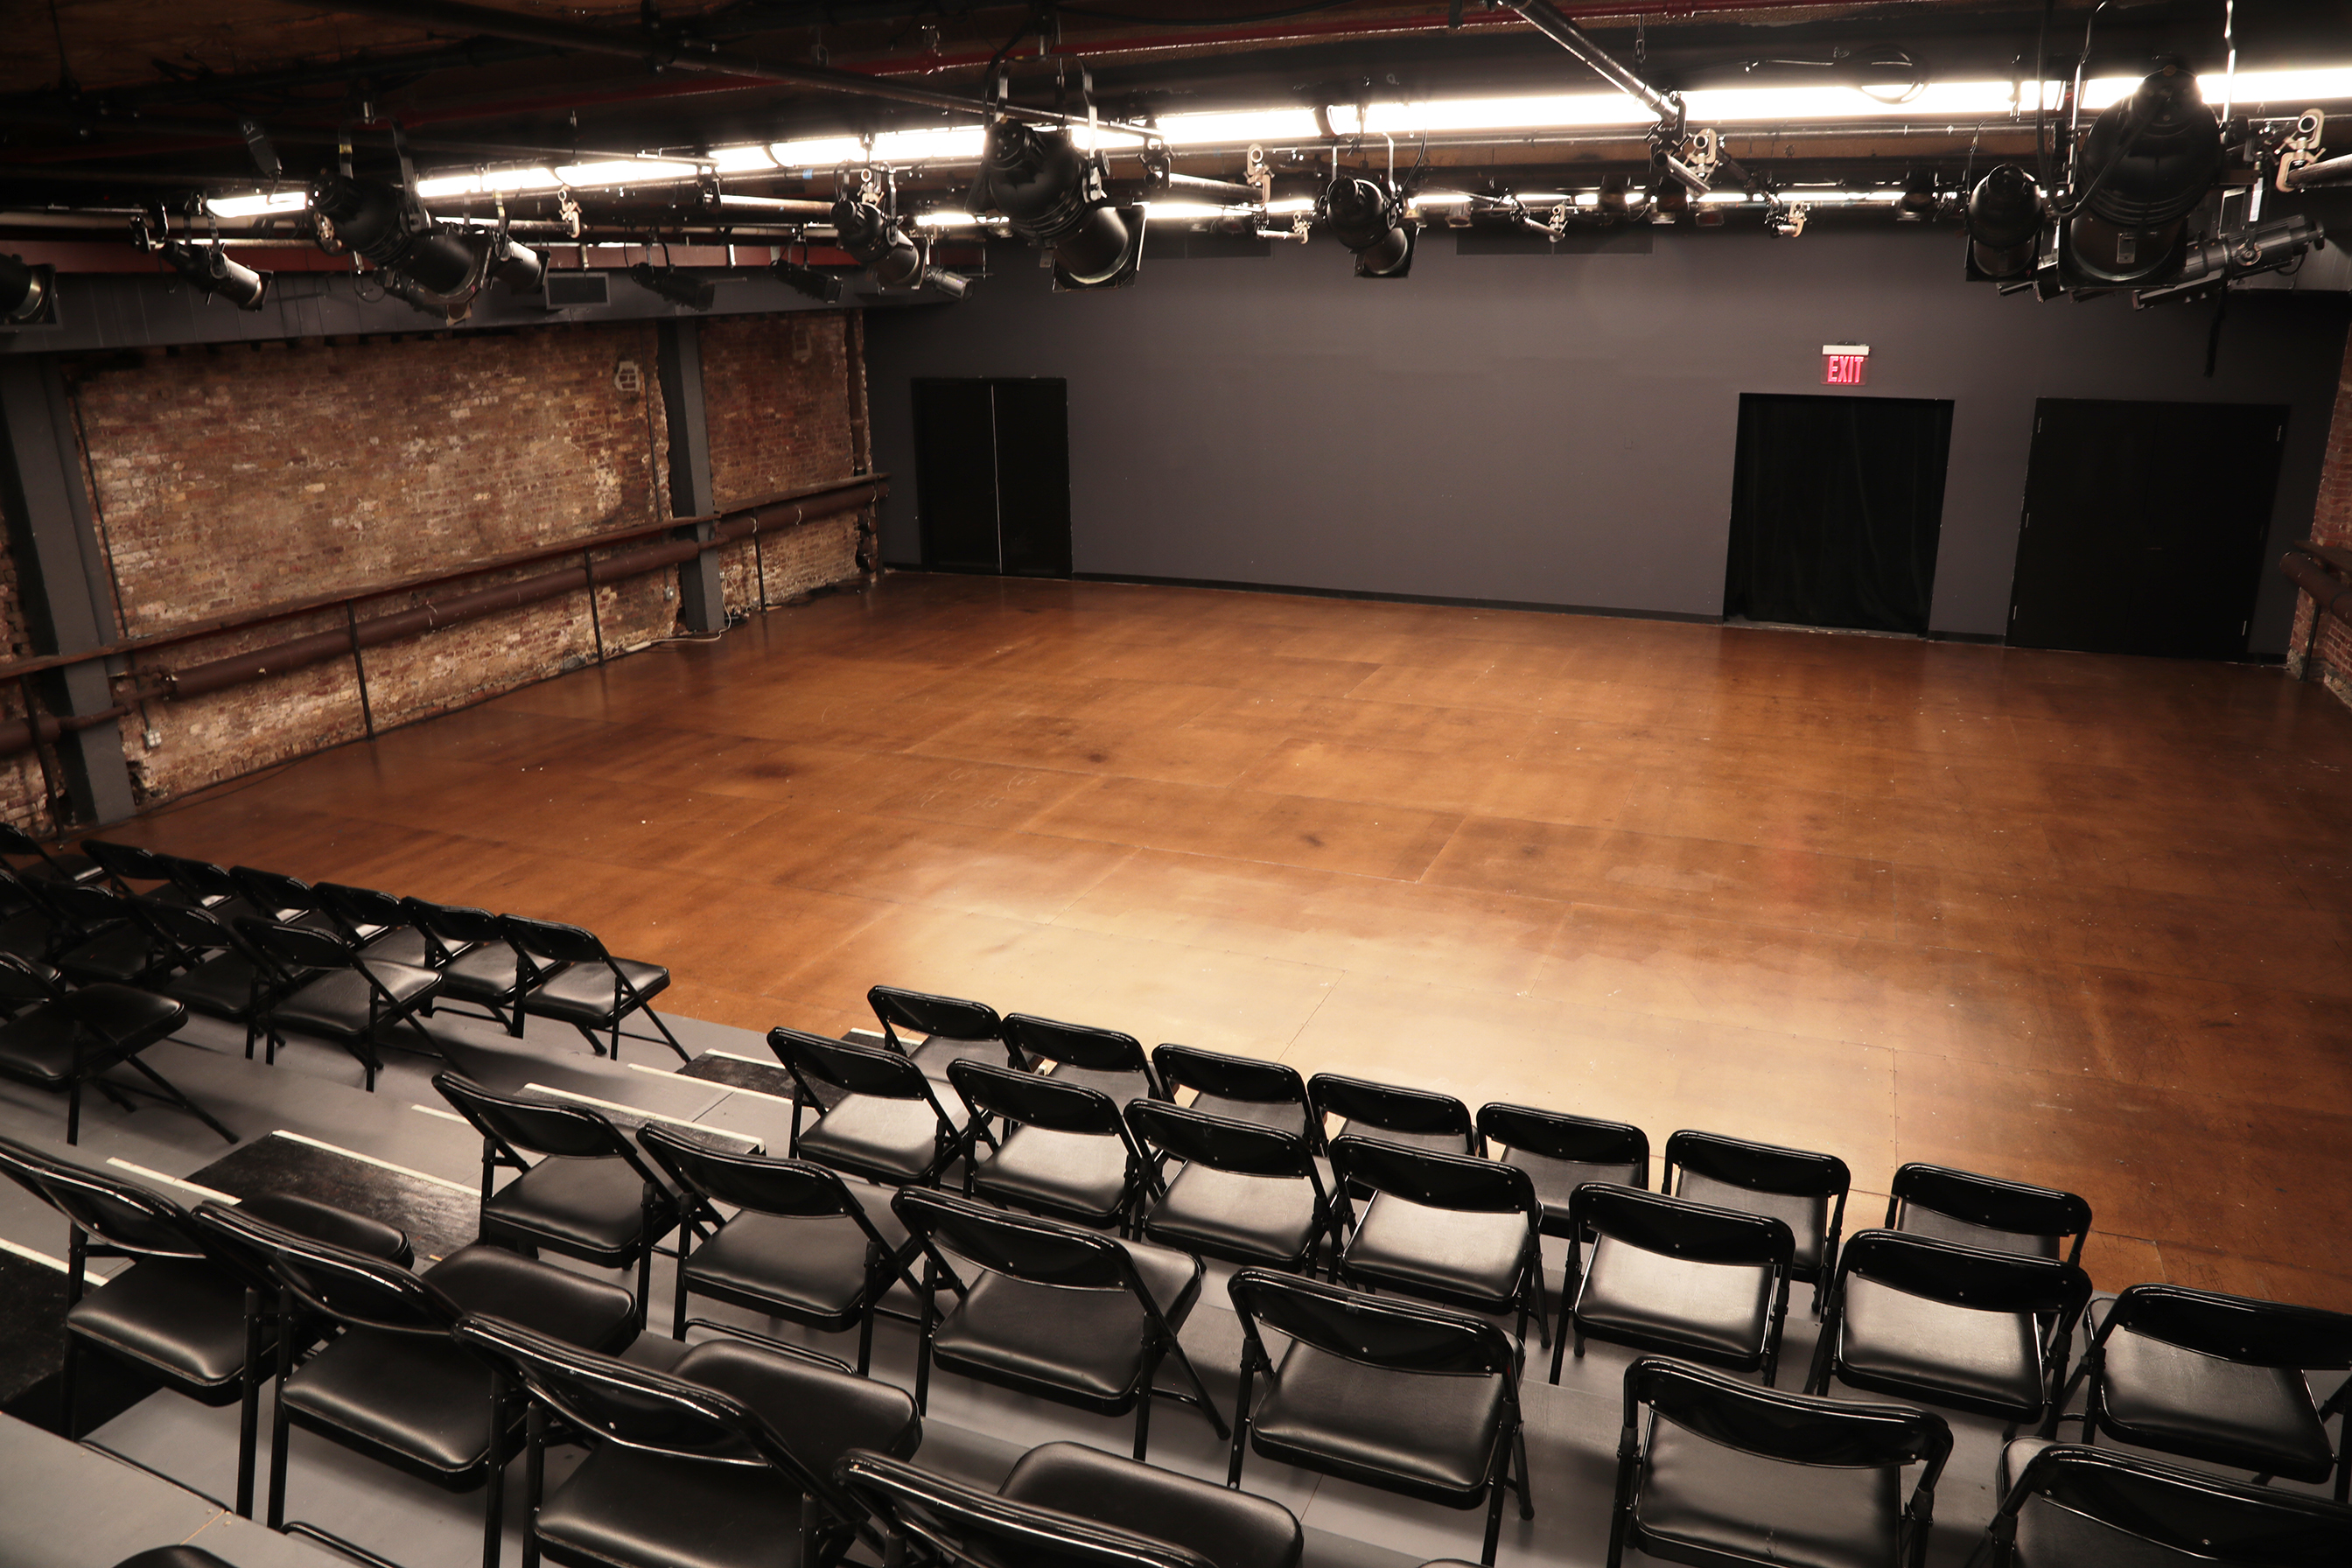 A performance space with one black wall, two brick walls, and a wooden floor. There are risers and black folding chairs set up for the audience. There are theatrical lighting fixtures set up on the ceiling.